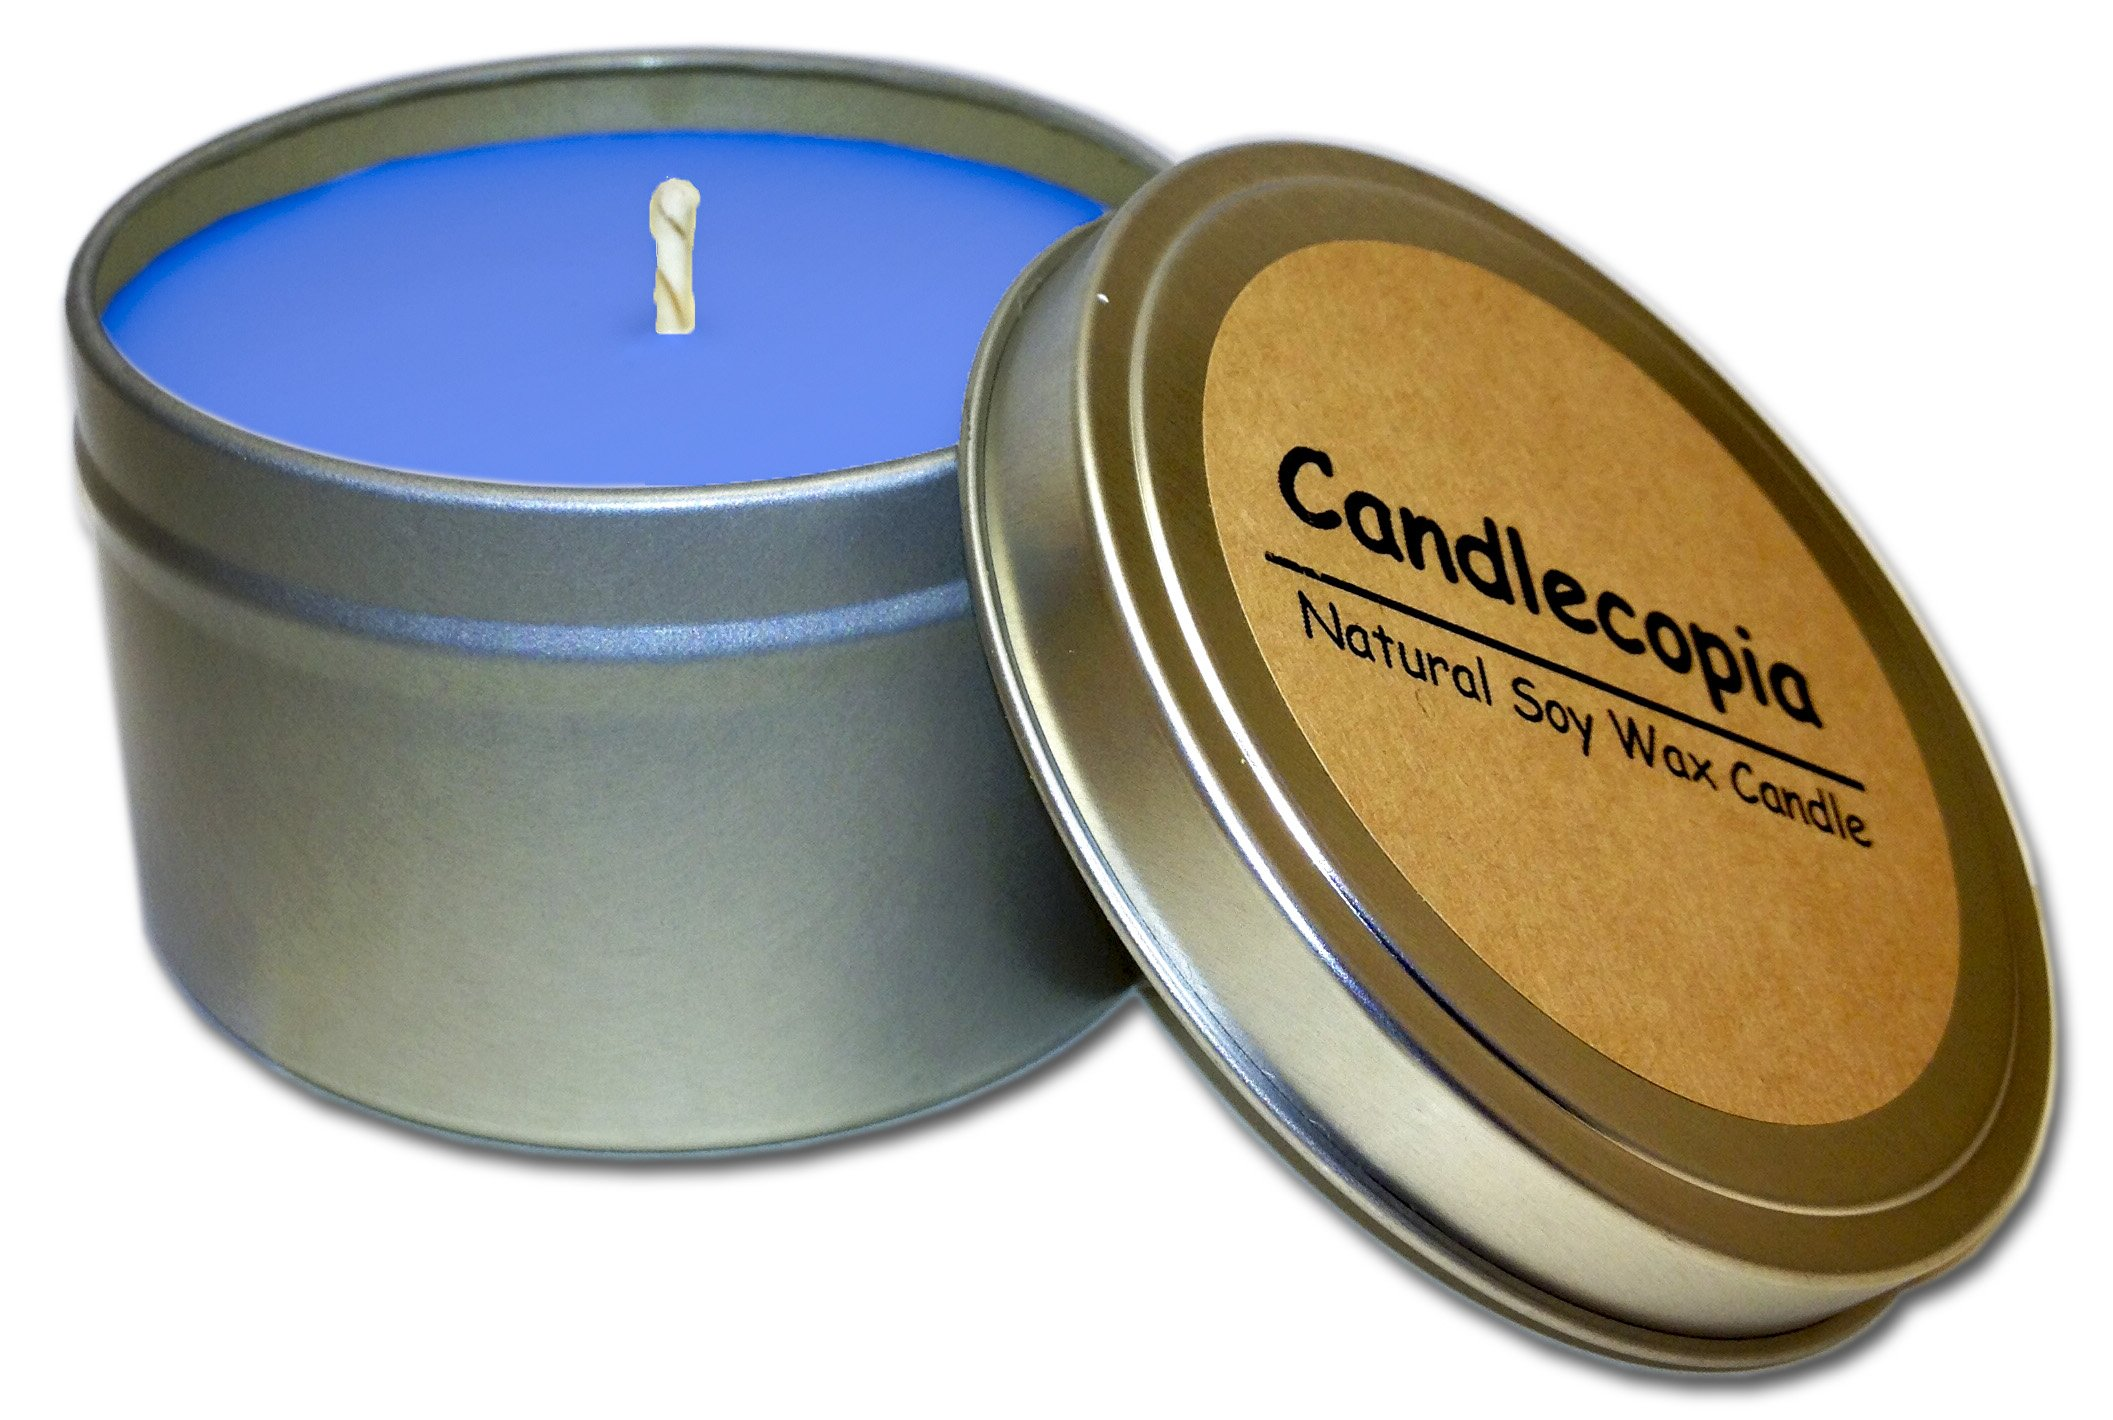 Candlecopia Man Cave Strongly Scented Sustainable Vegan Natural Soy Travel Tin Candle by Candlecopia